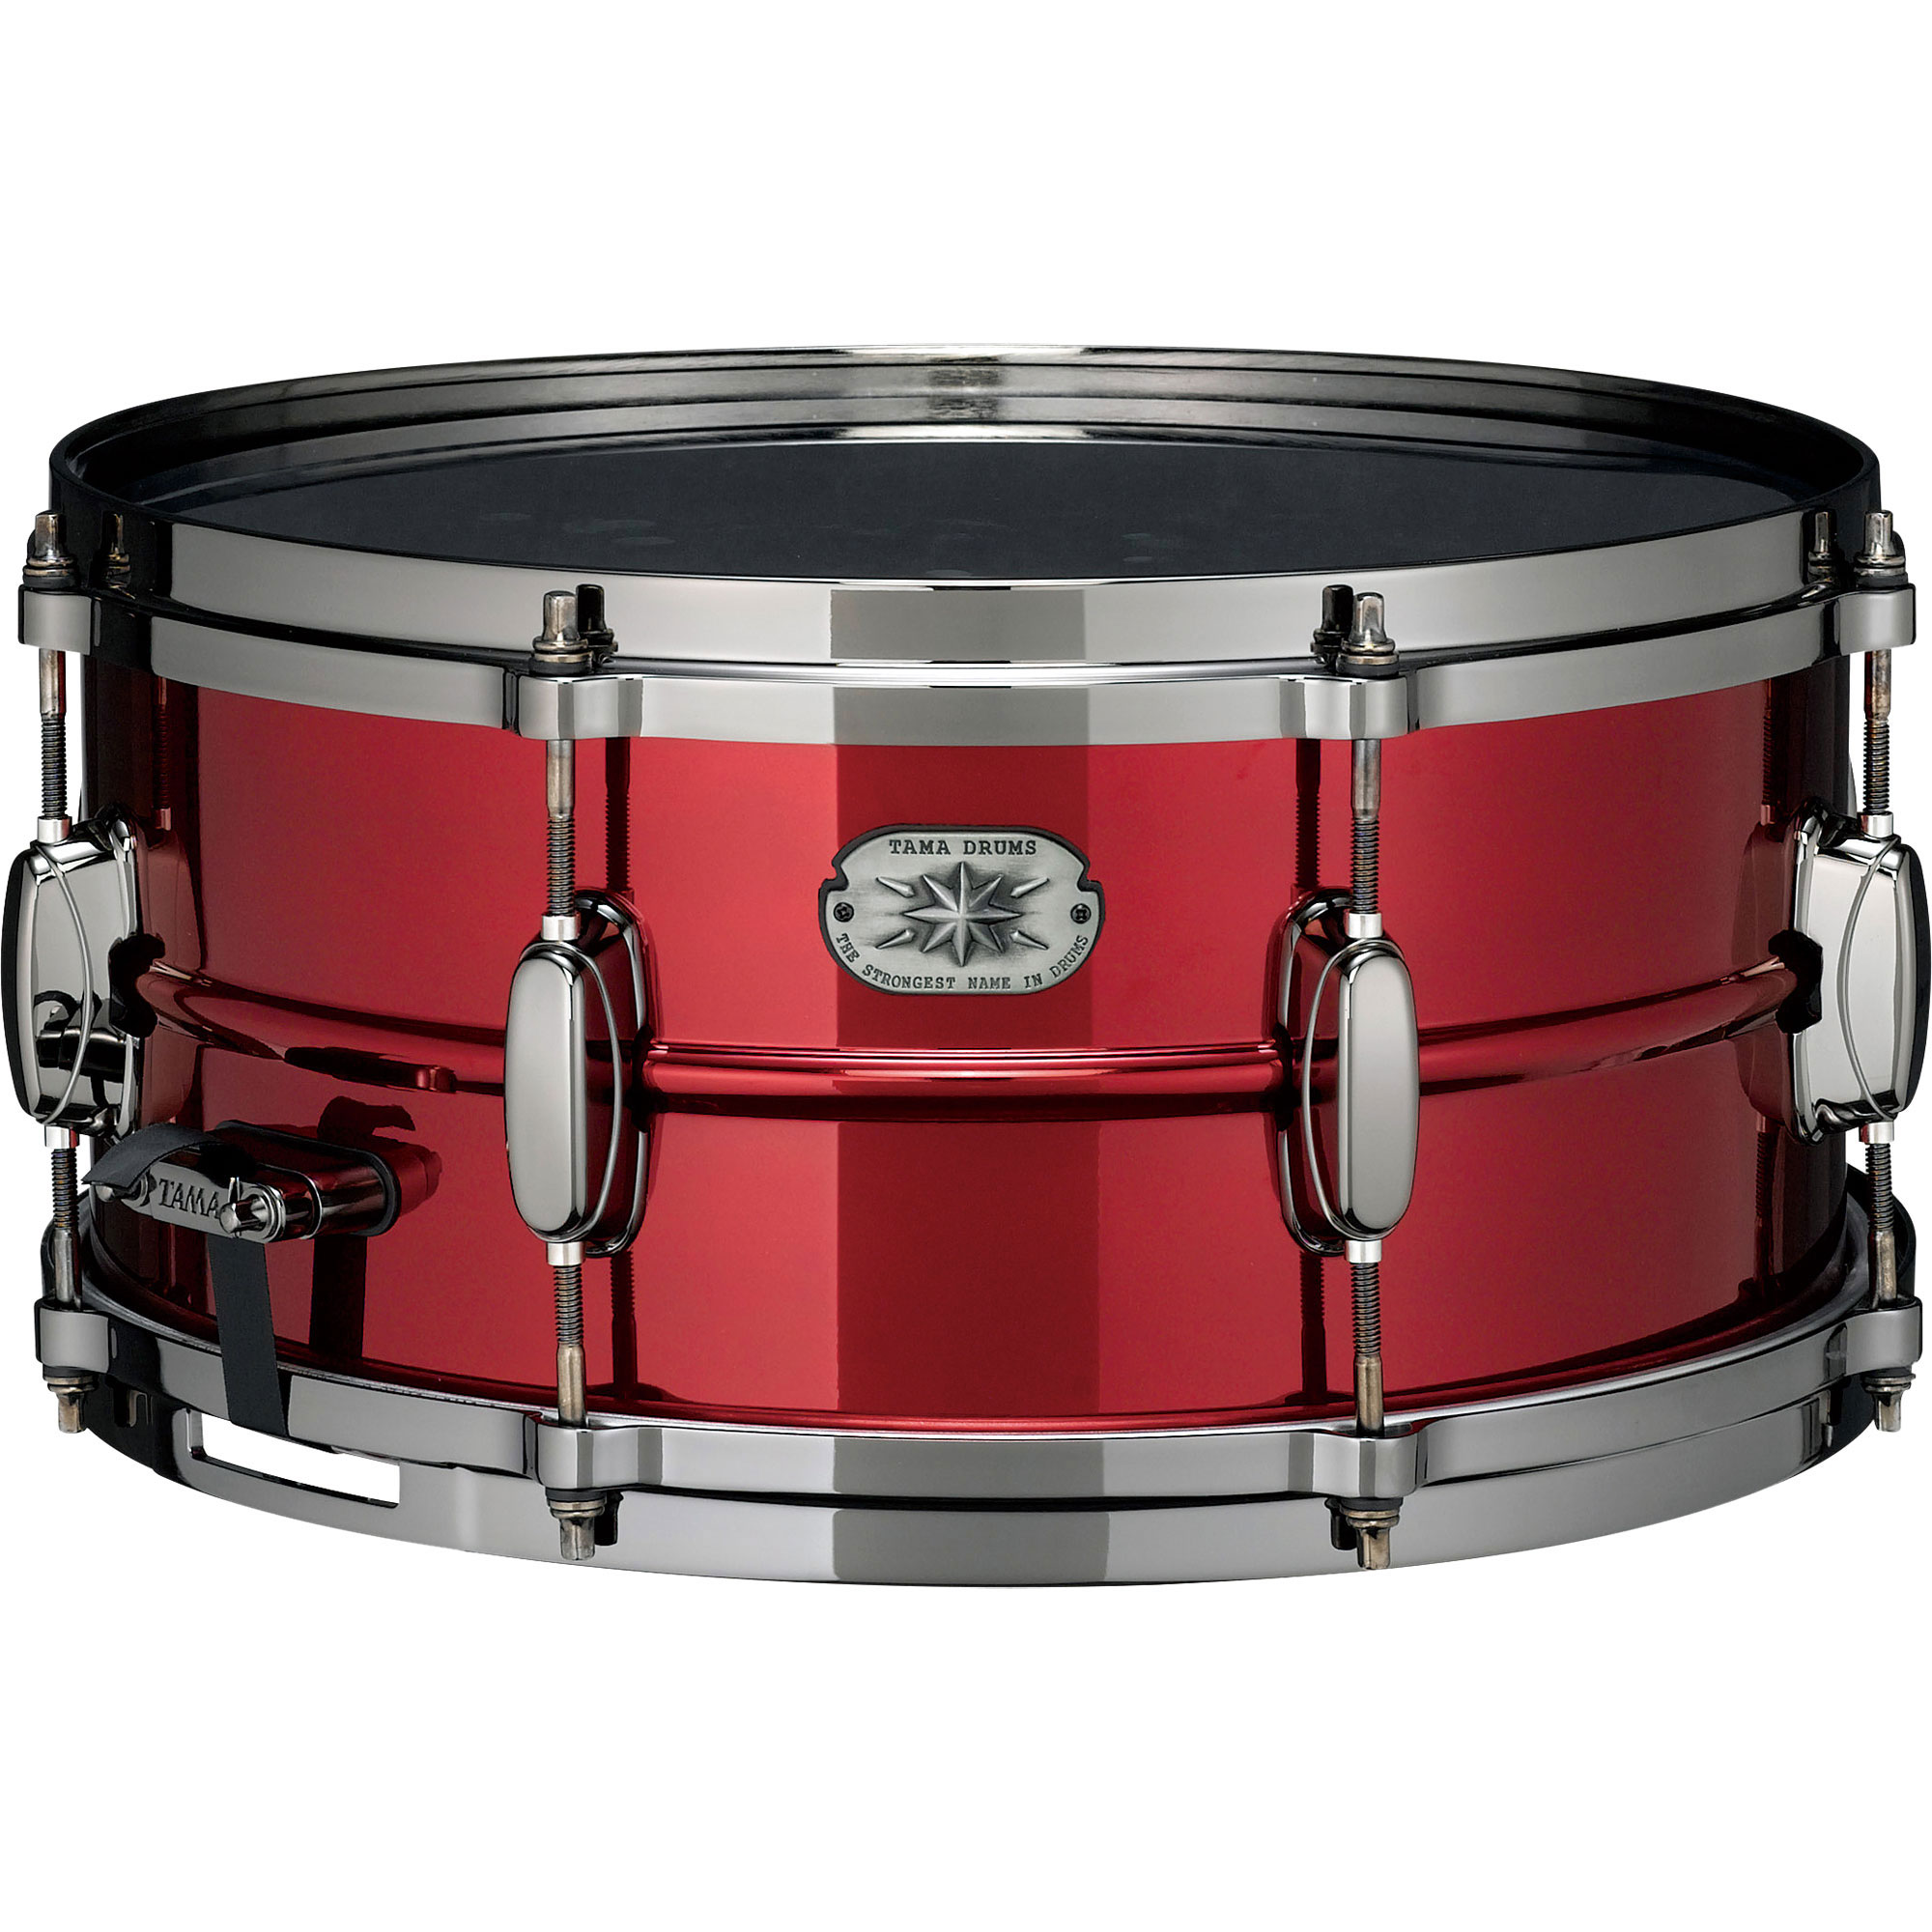 "Tama Limited Edition 6.5"" x 14"" Metalworks Steel Snare Drum in Ruby Red Lacquer with Black Nickel Hardware"